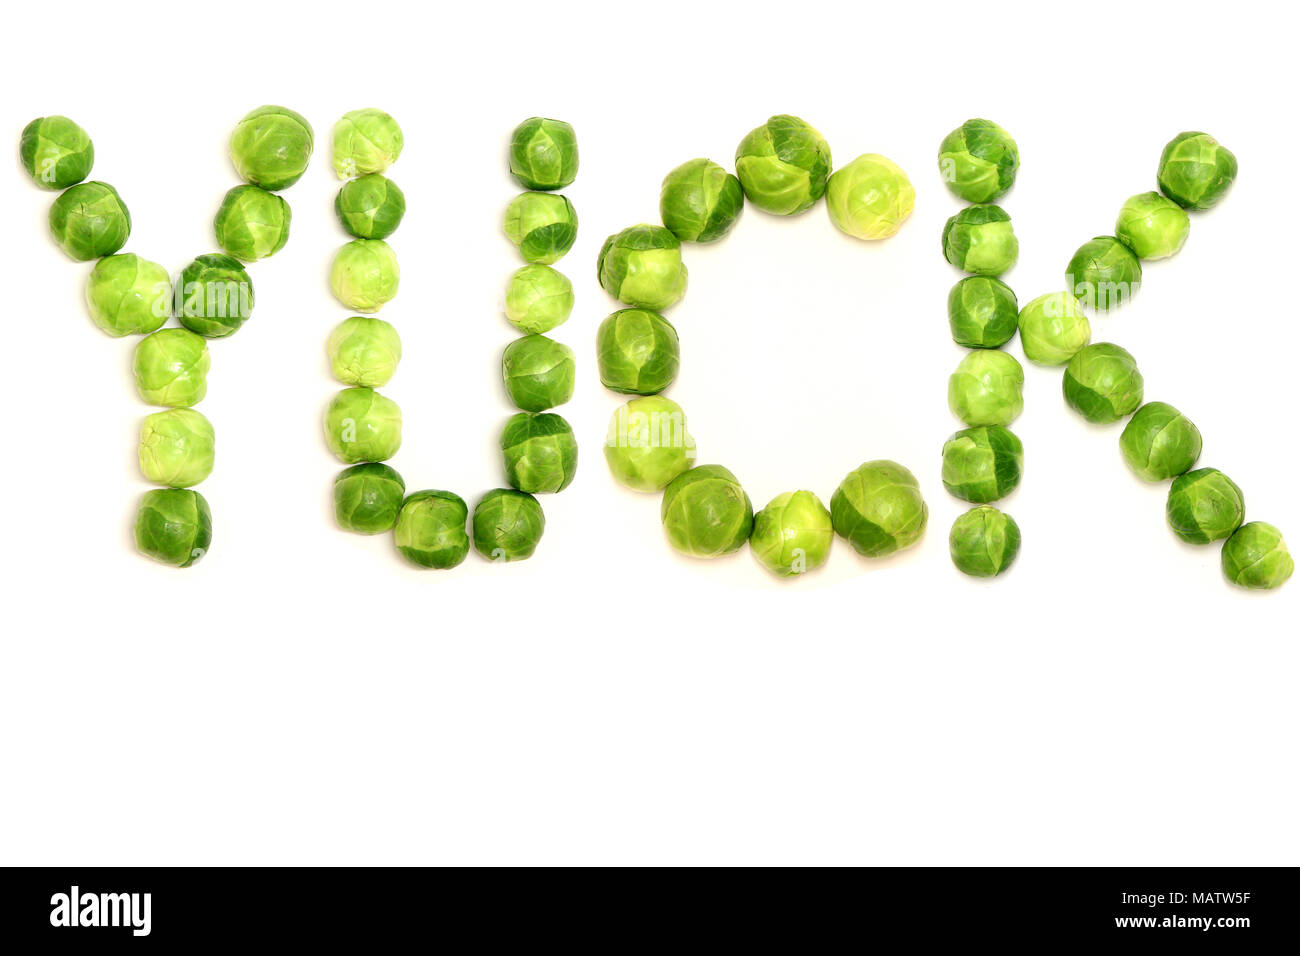 the word yuck is spelled with brussel sprouts to provide a light